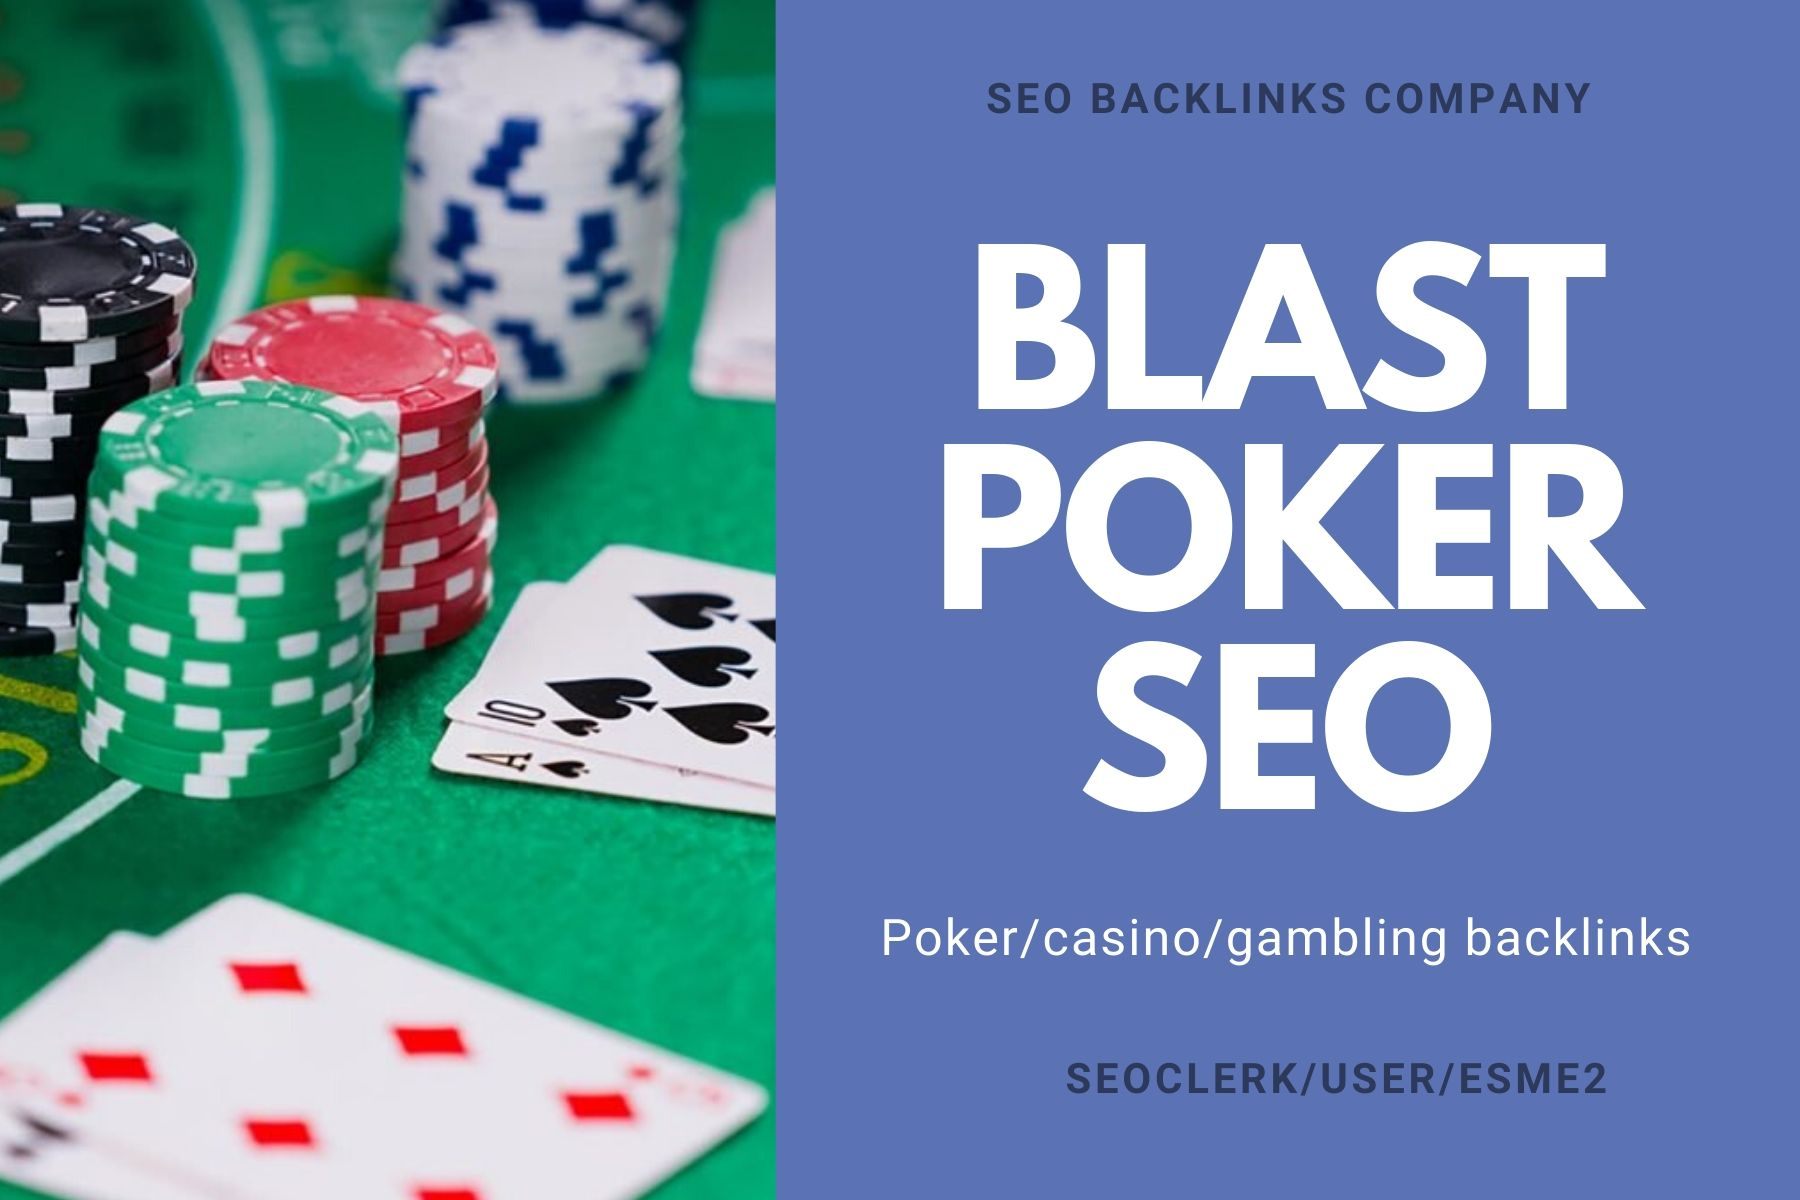 JUDI BLAST 888+ Poker/casino/gambling SEO backlinks ranking solution all algorithm safe